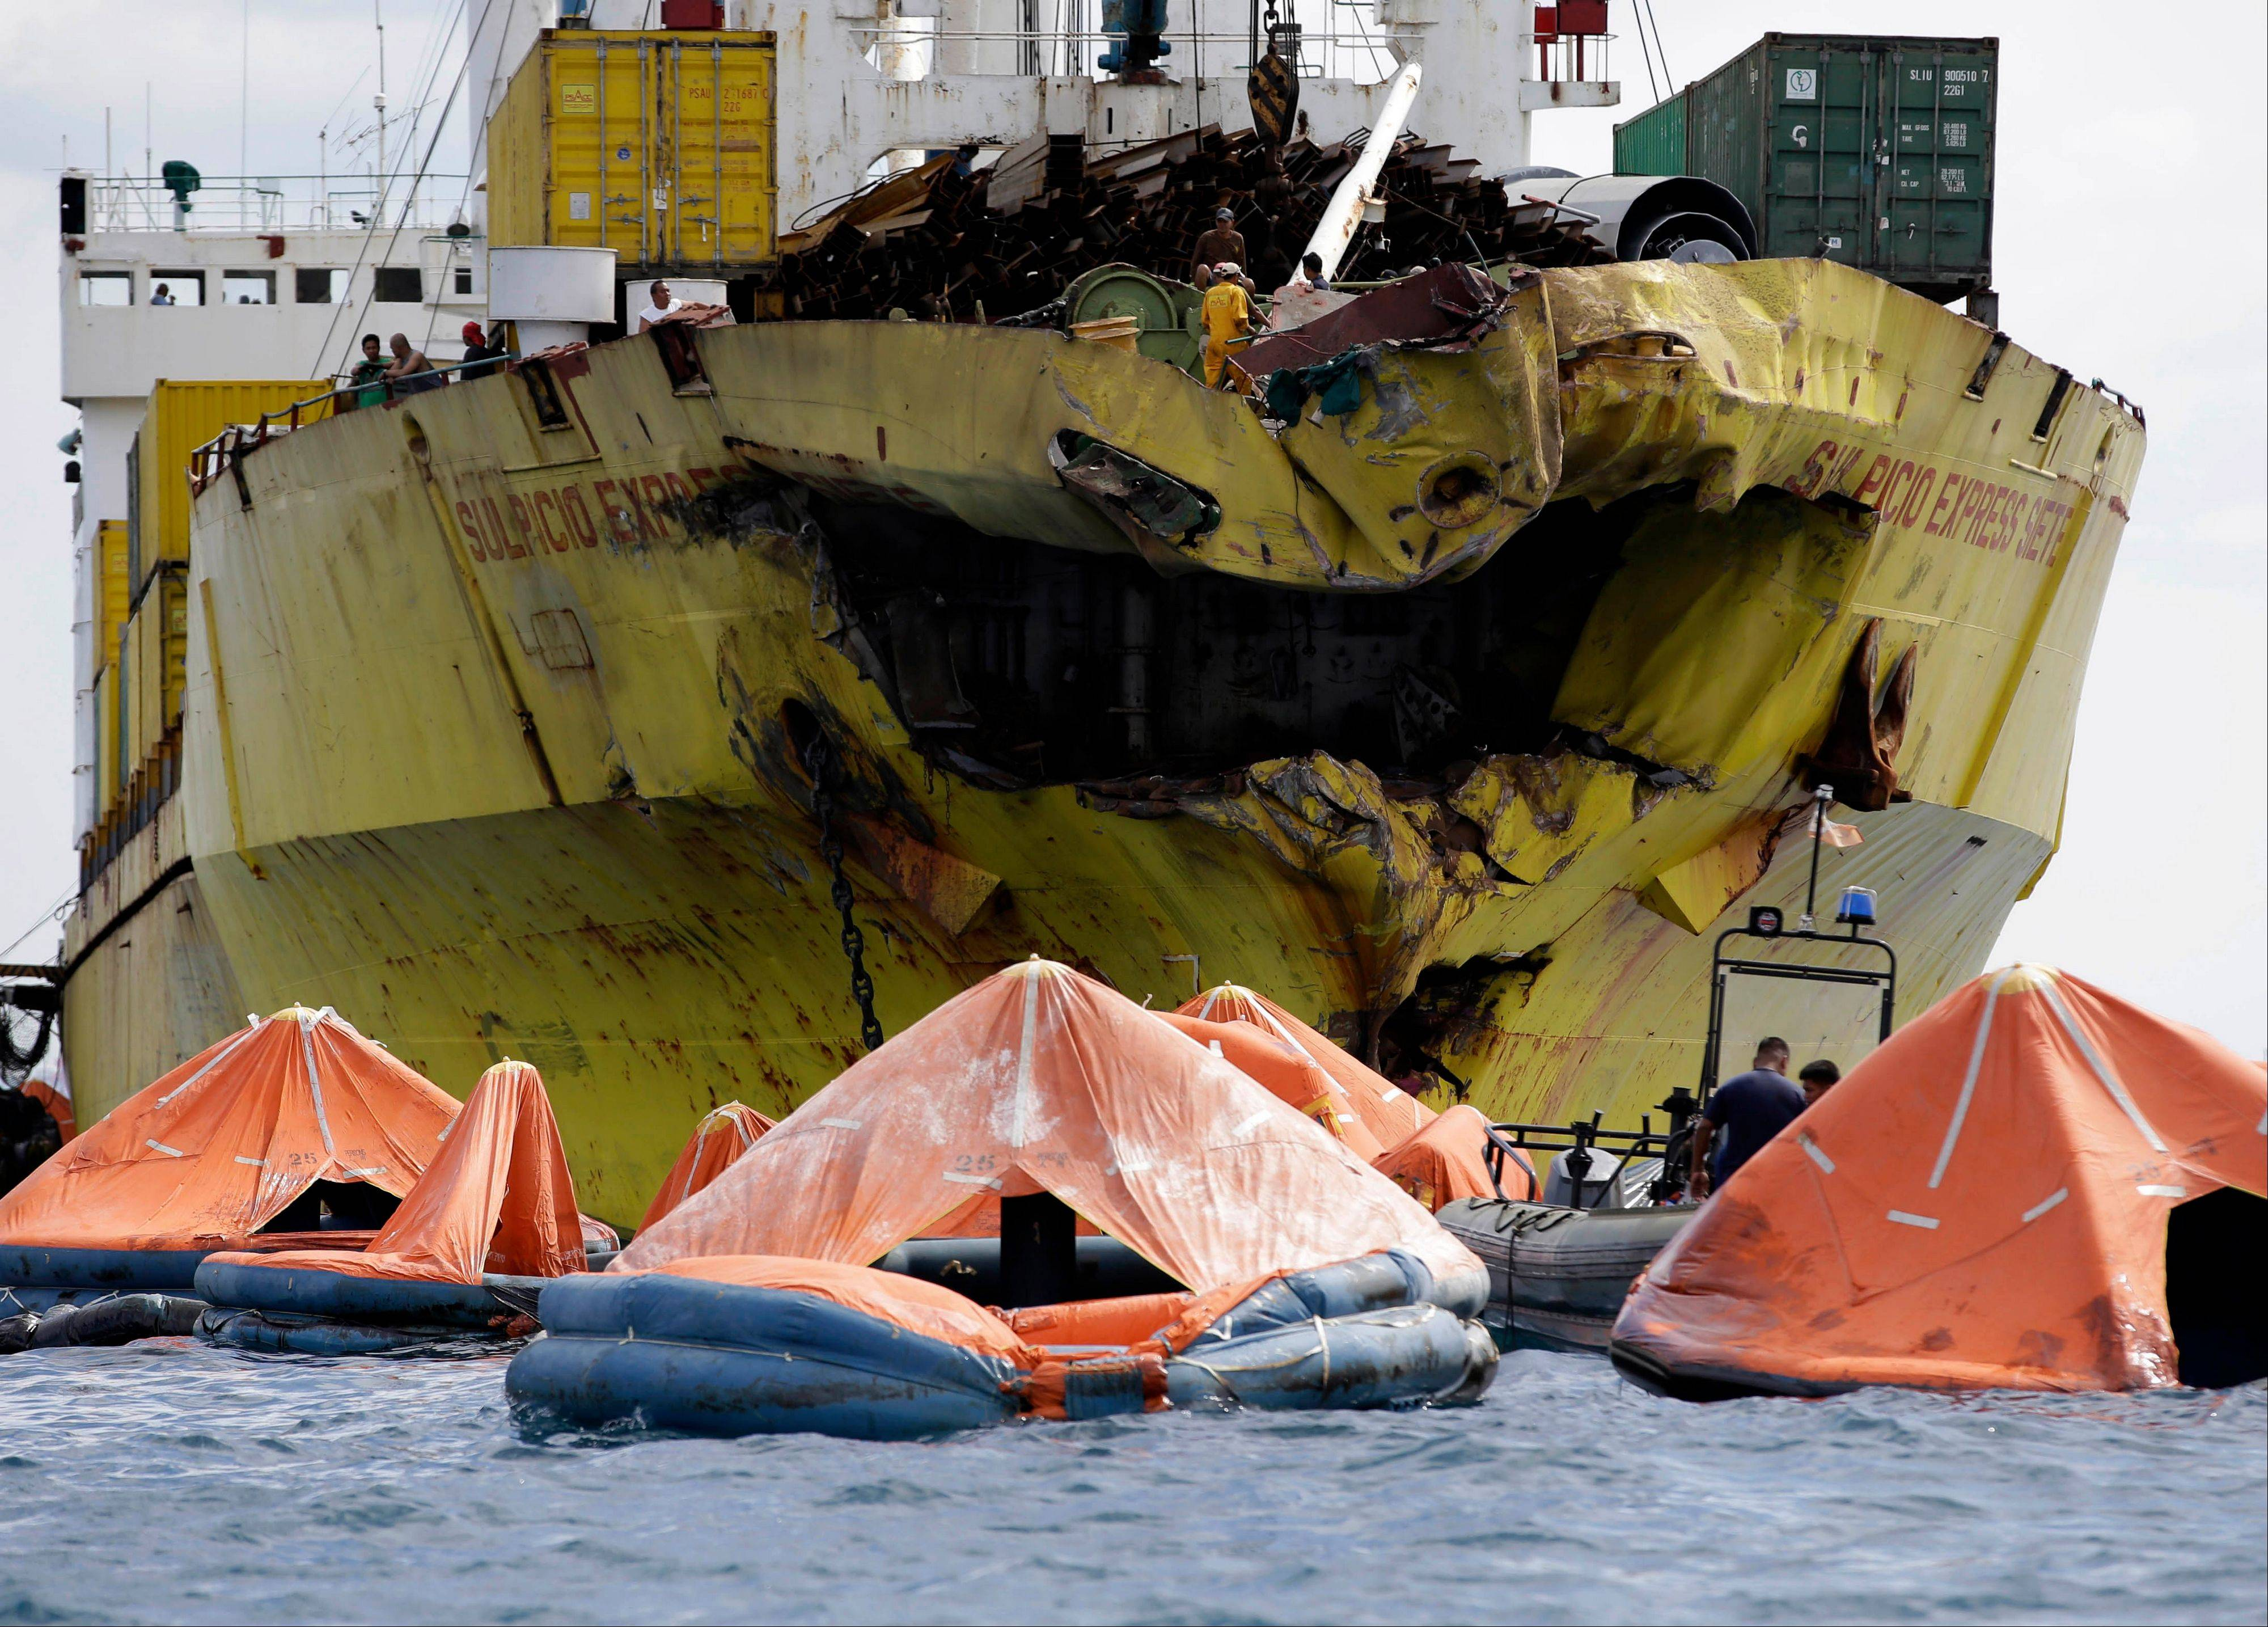 Associated Press A cluster of life rafts floats near the cargo ship Sulpicio Express Siete Saturday Aug. 17, a day after it collided with a passenger ferry off the waters of Talisay city, Cebu province in central Philippines. Divers combed through a sunken ferry Saturday to retrieve the bodies of more than 200 people still missing from an overnight collision with a cargo vessel near the central Philippine port of Cebu that sent passengers jumping into the ocean and leaving many others trapped. At least 28 were confirmed dead and hundreds rescued. The captain of the ferry MV Thomas Aquinas, which was approaching the port late Friday, ordered the ship abandoned when it began listing and then sank just minutes after collision with the MV Sulpicio Express, coast guard deputy chief Rear Adm. Luis Tuason said.